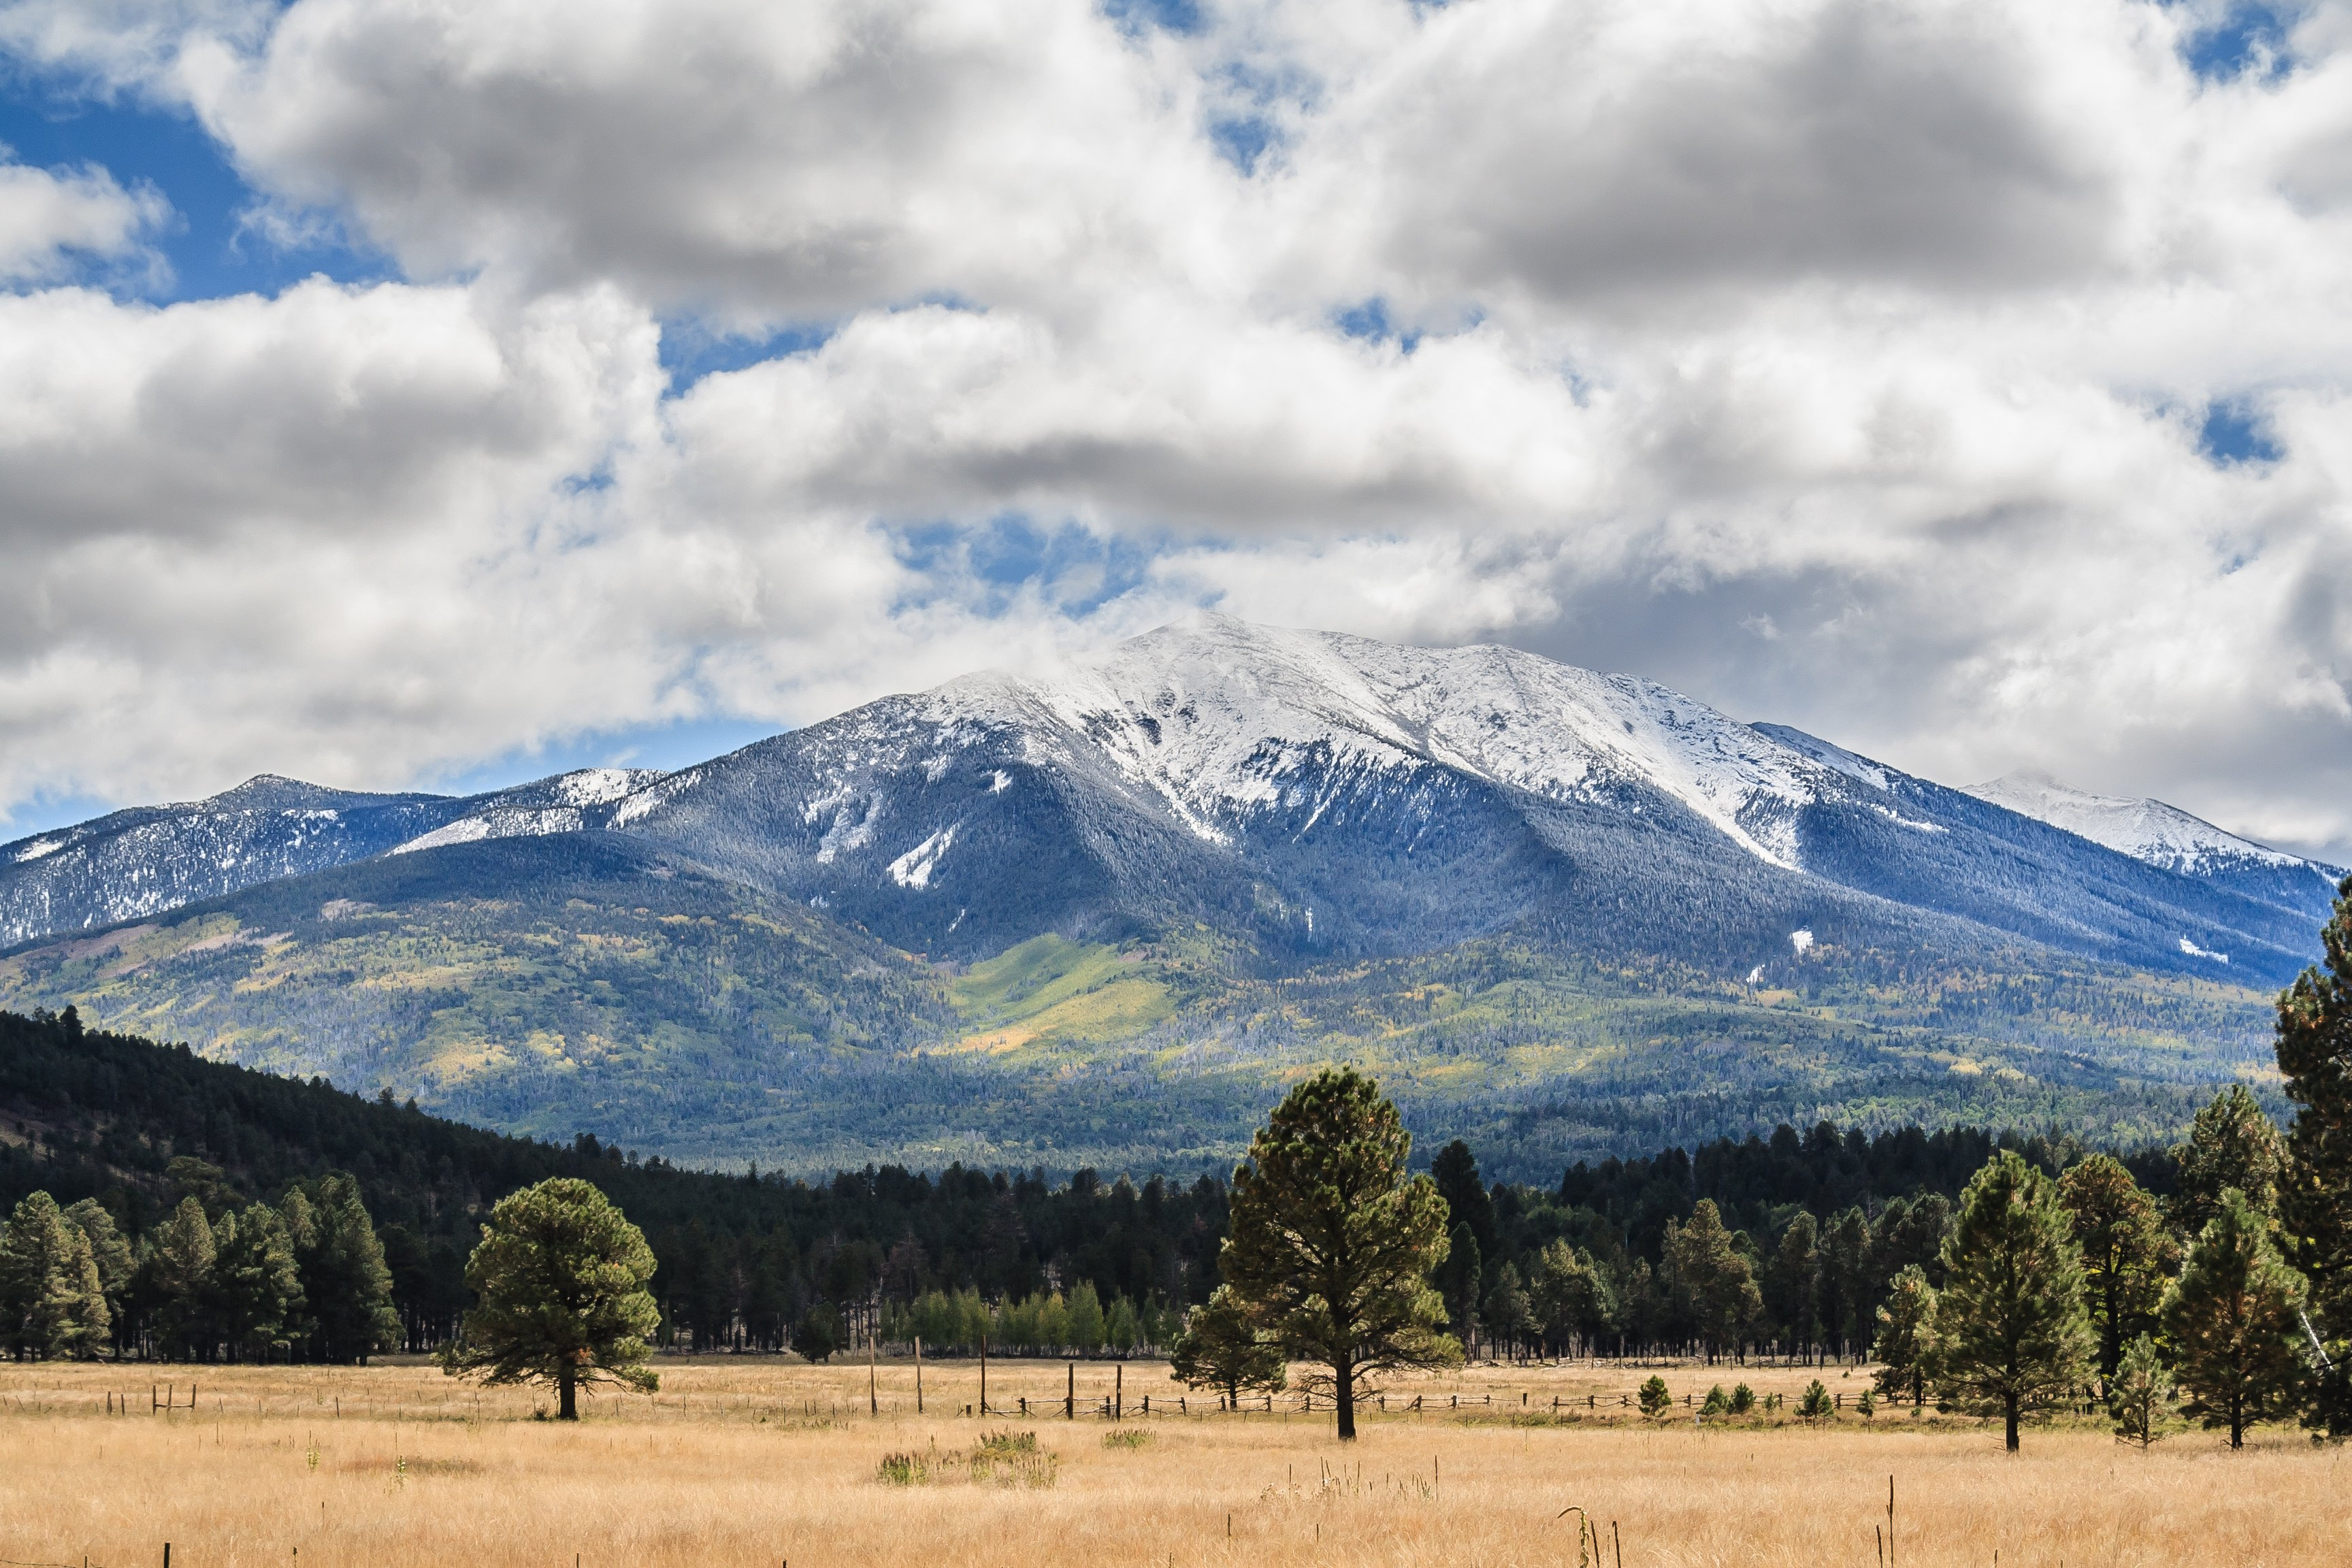 San Francisco Peaks Flagstaff, AZ | Justin Bemis Real Estate